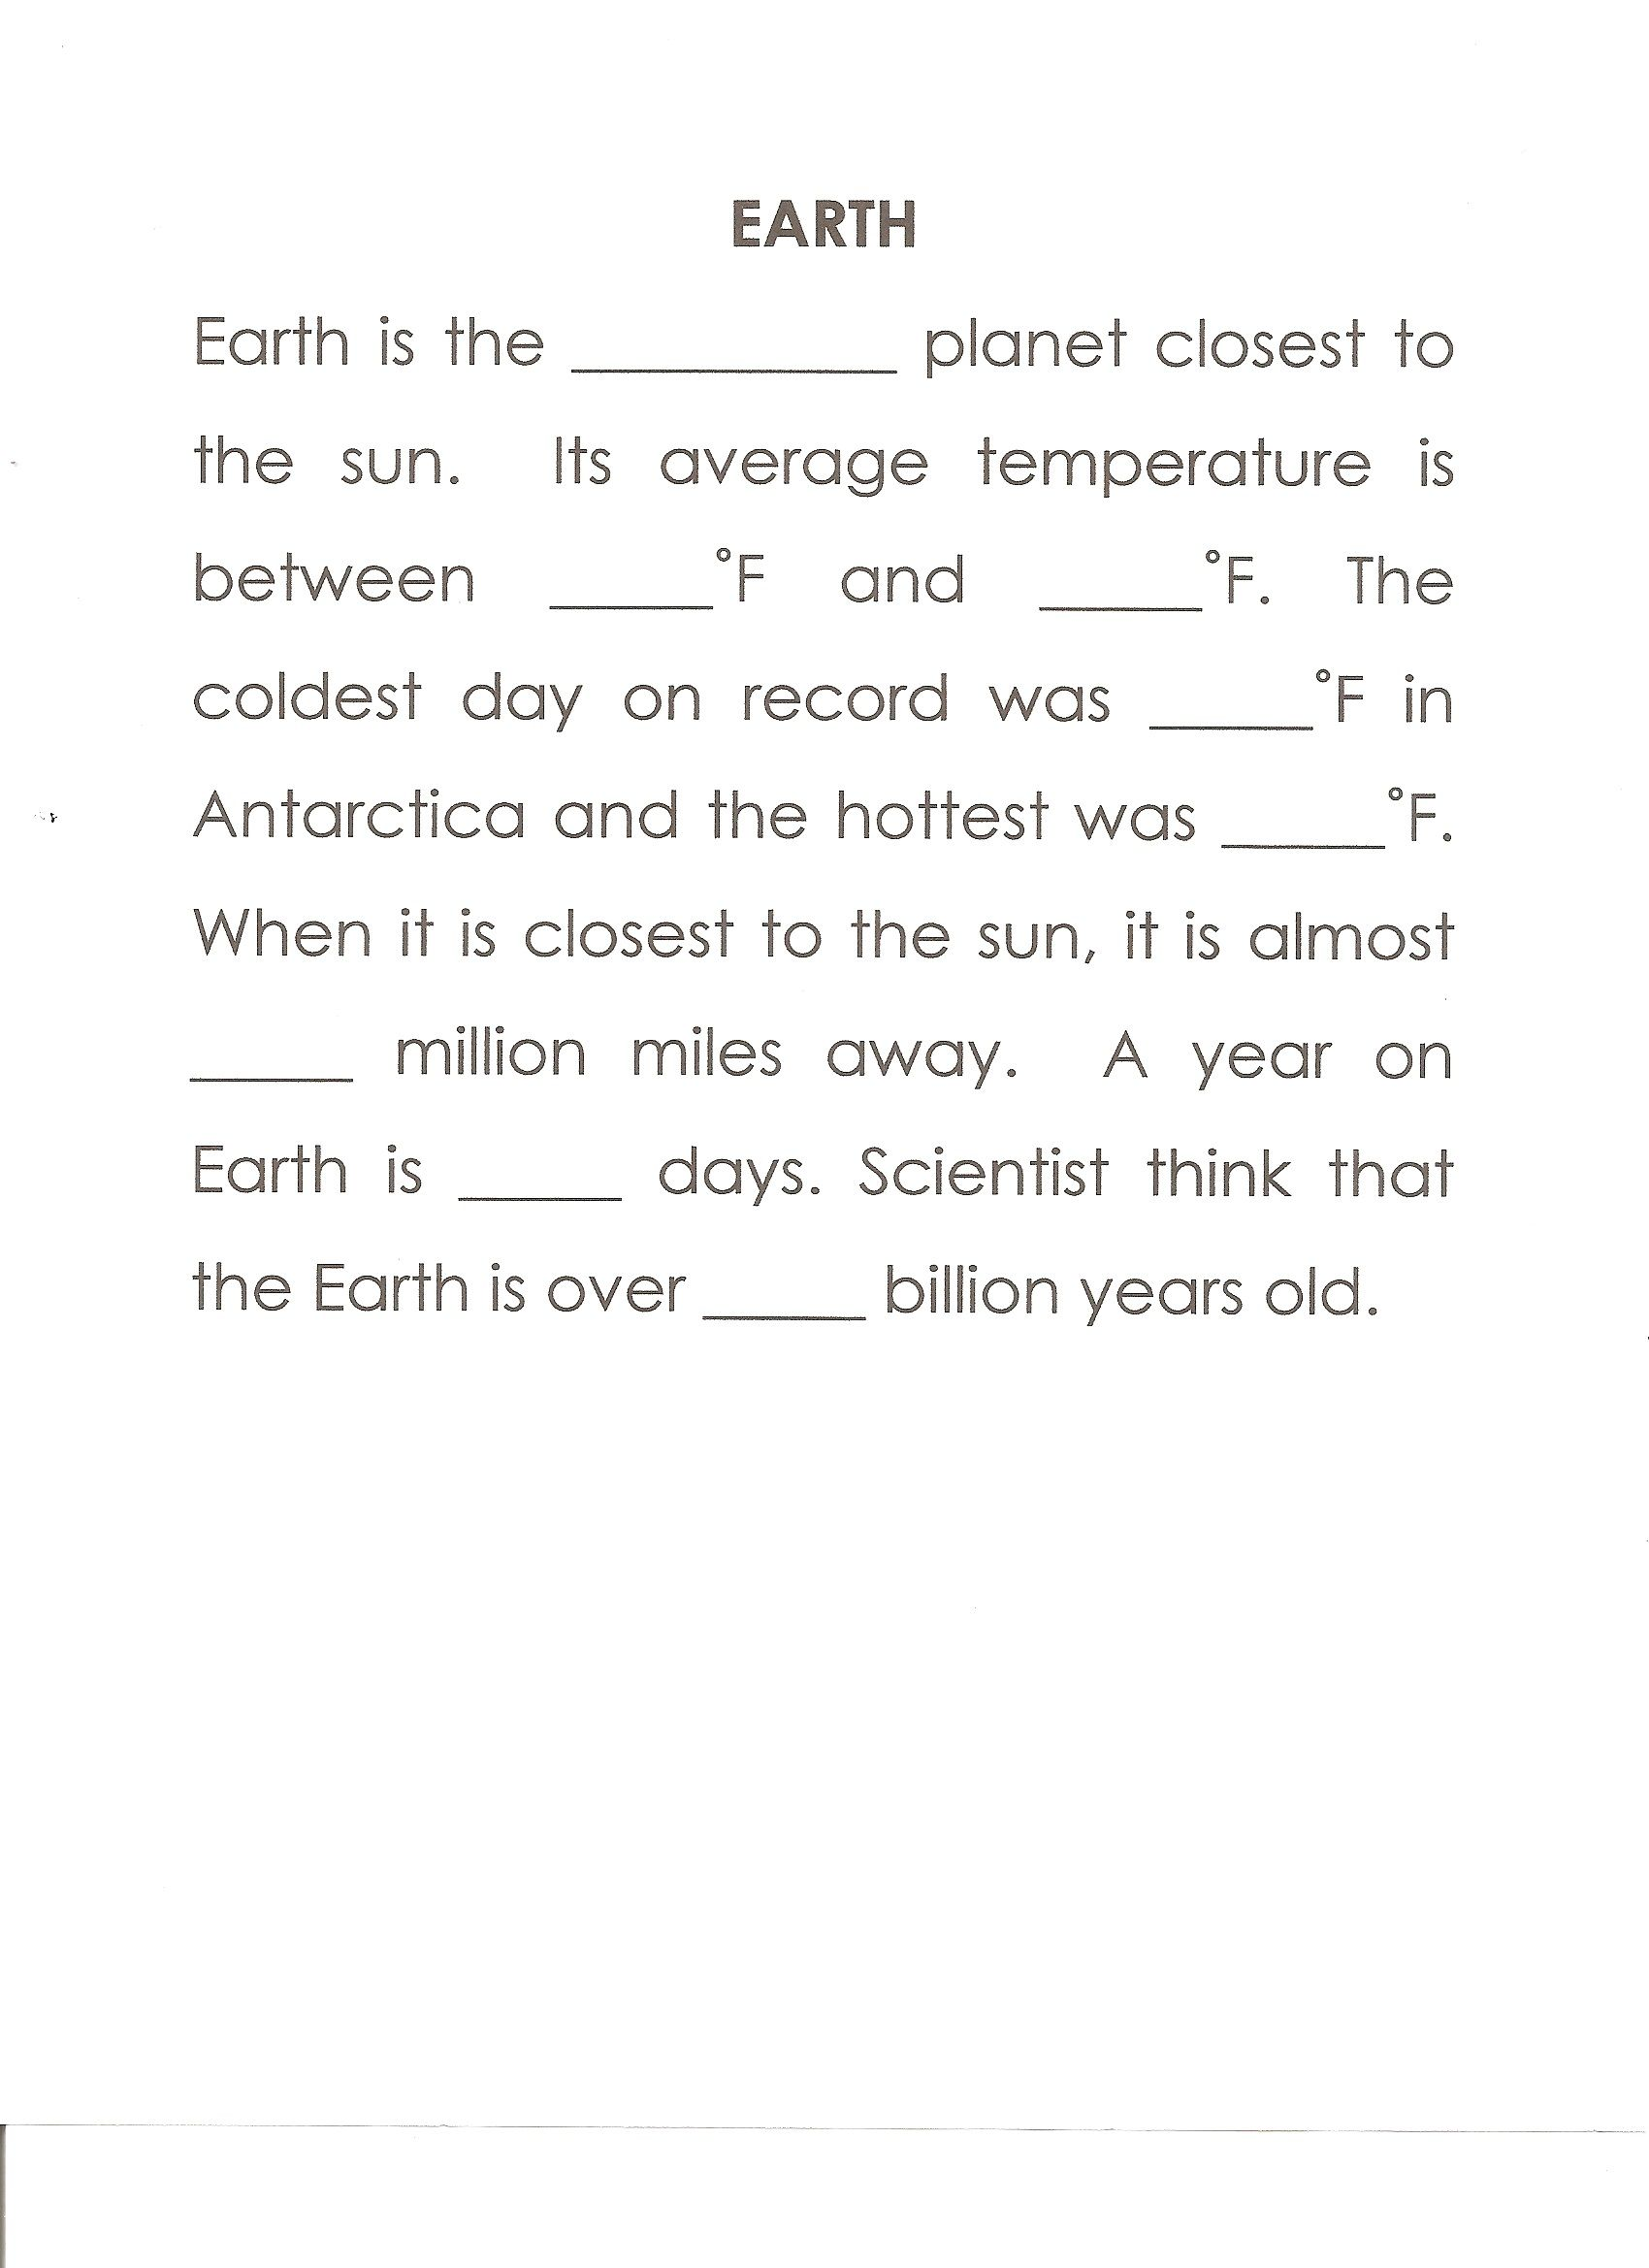 Earth Worksheet Answers Third 64 80 129 159 93 365